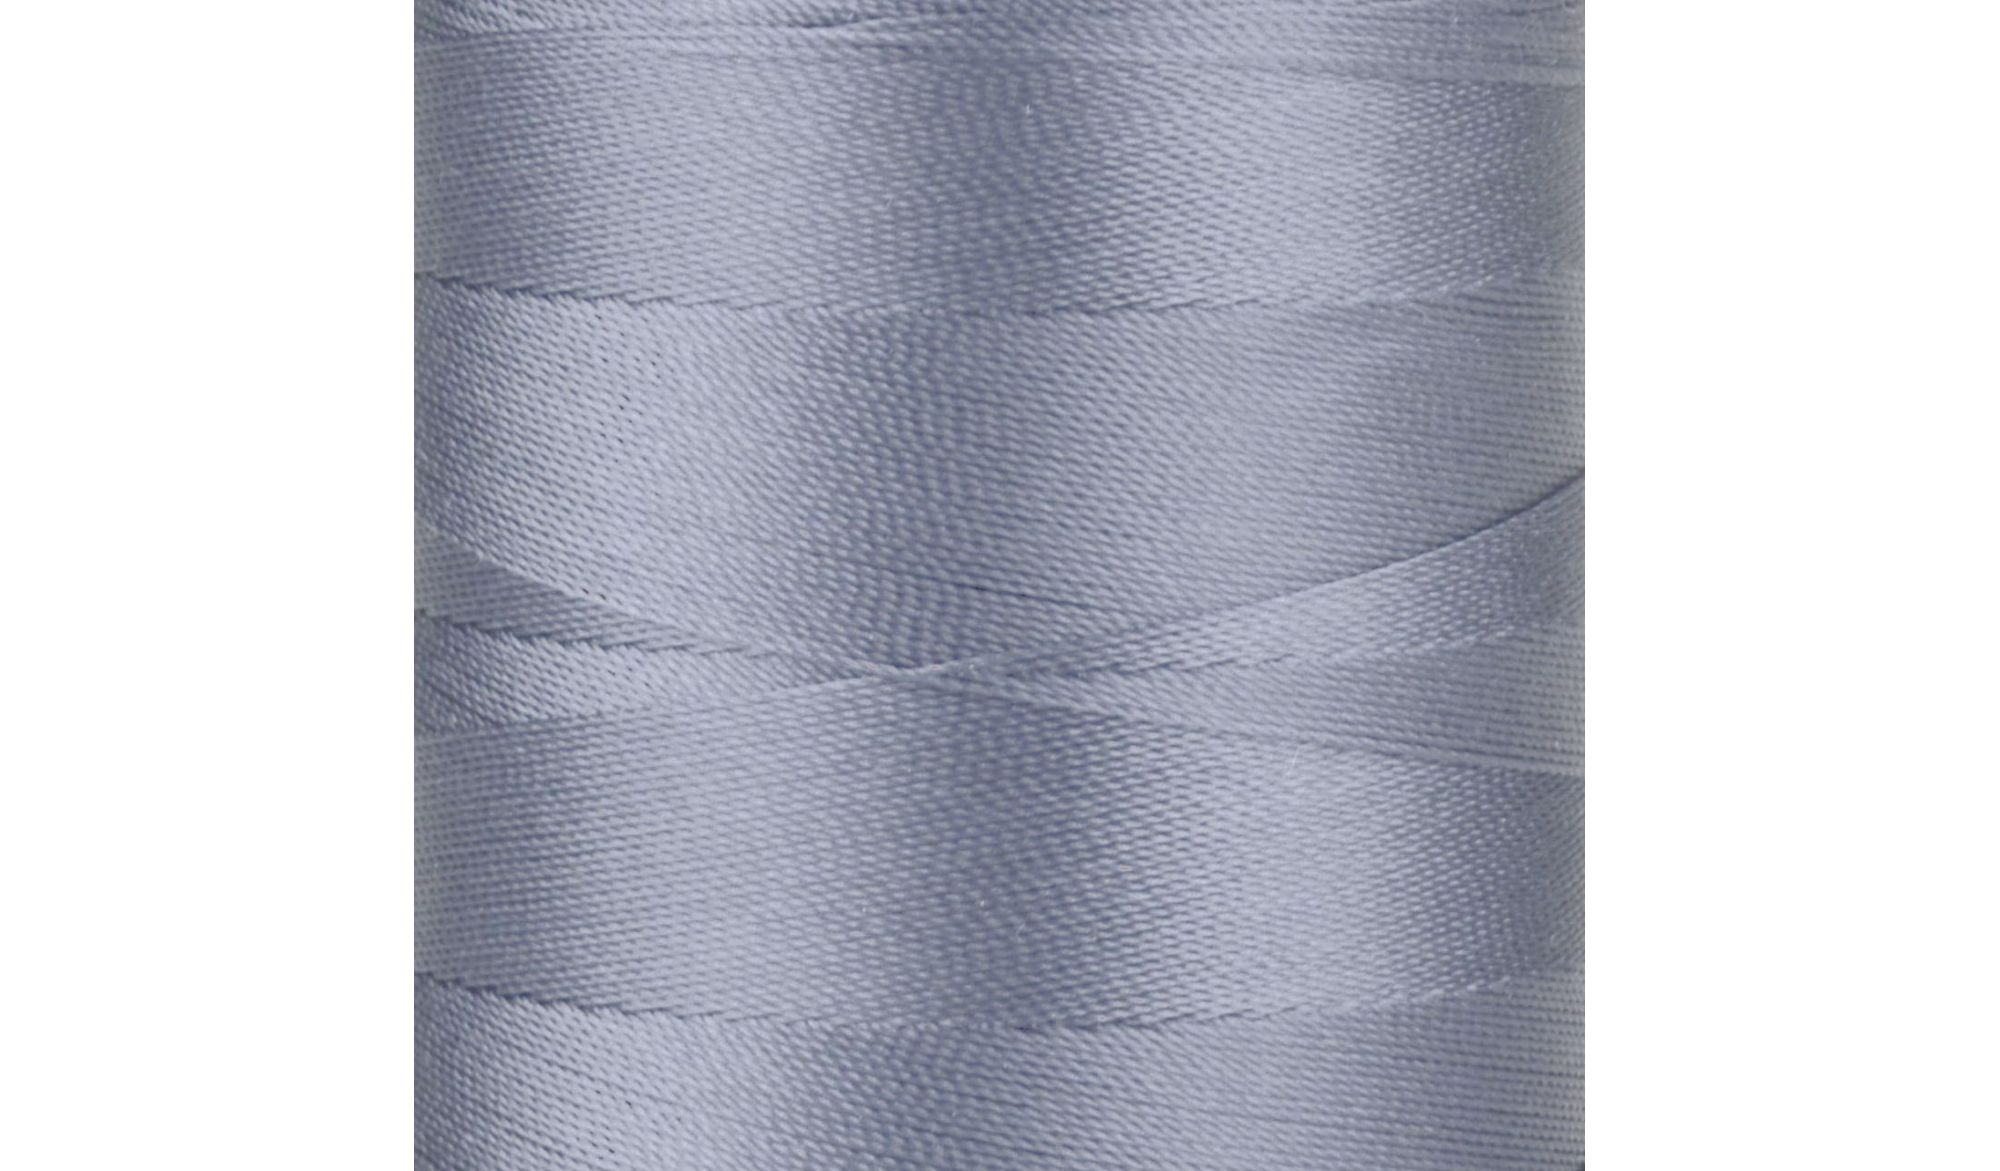 NICI 1000 10 ATOS 118 - Threads alt_nici_kolor_118 Replaces sewing Decorative quilting - Colour